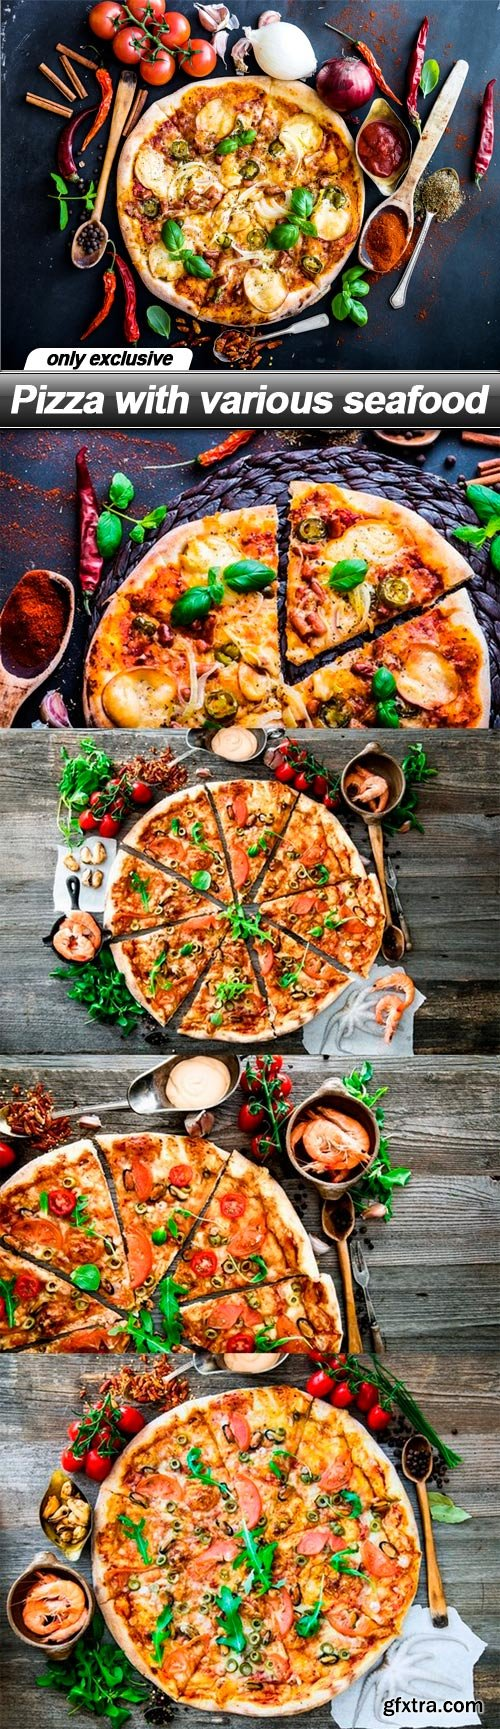 Pizza with various seafood - 5 UHQ JPEG